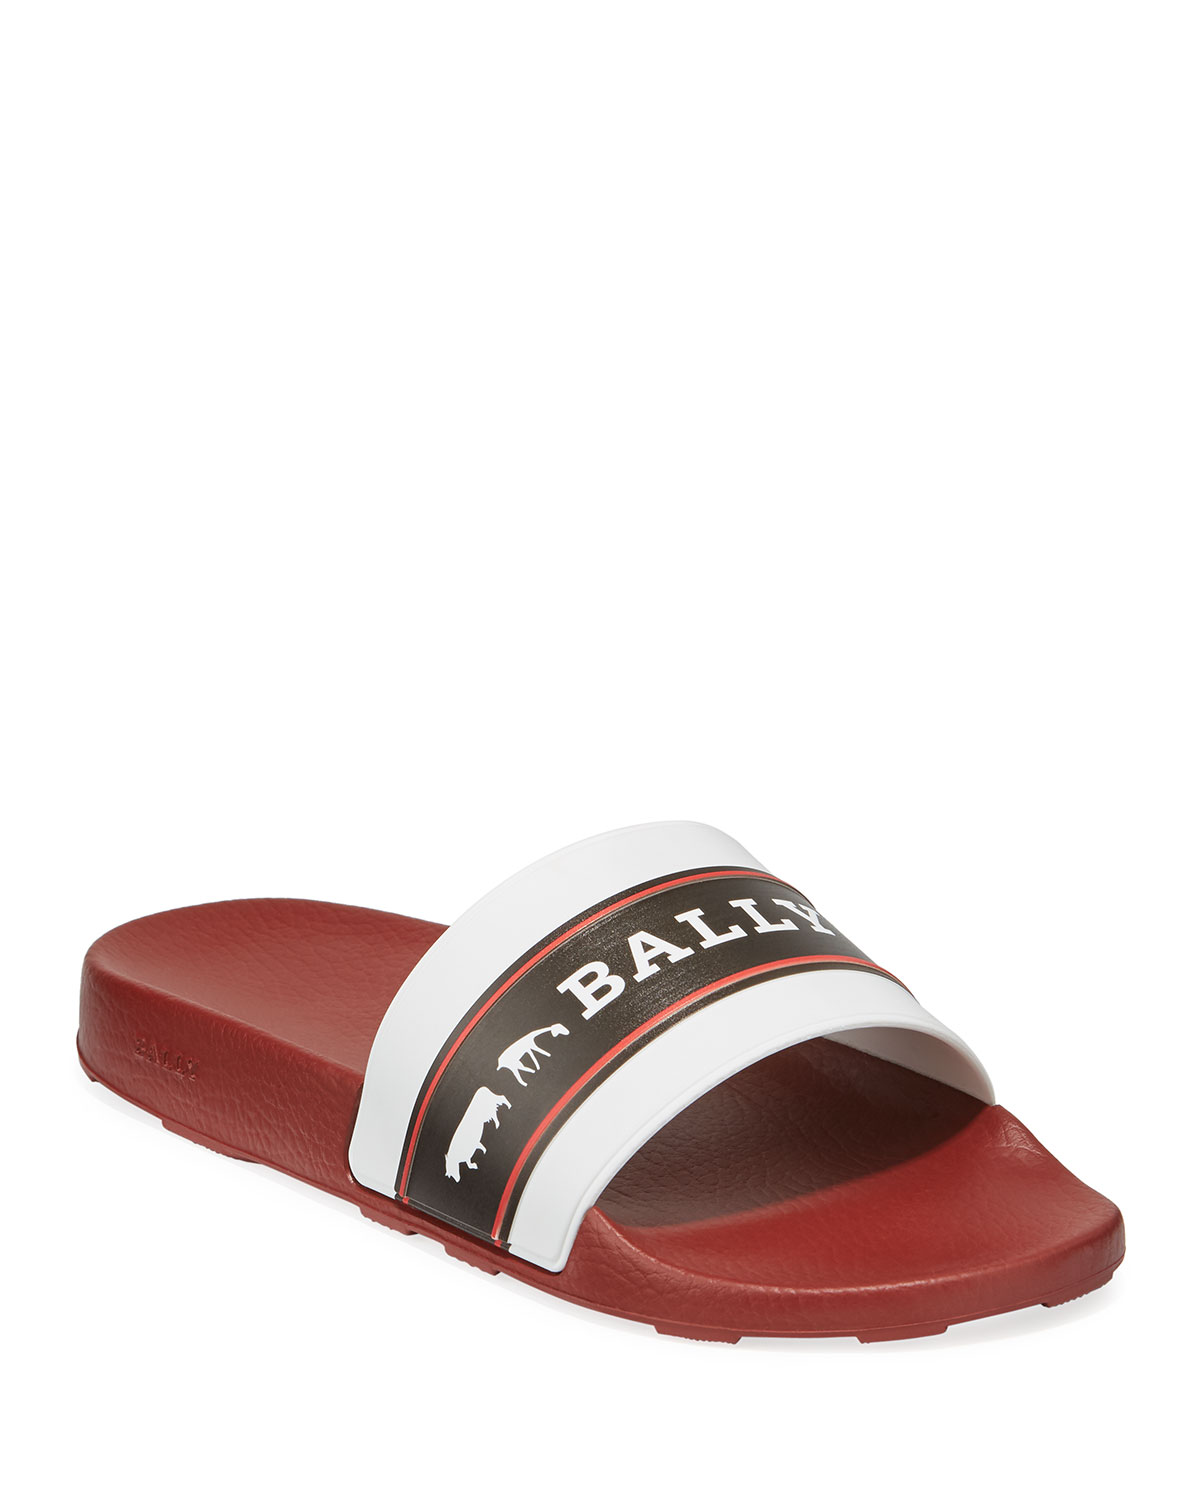 a3af071a2 Bally Men's Ani 8 Rubber Pool Slide Sandals | Neiman Marcus